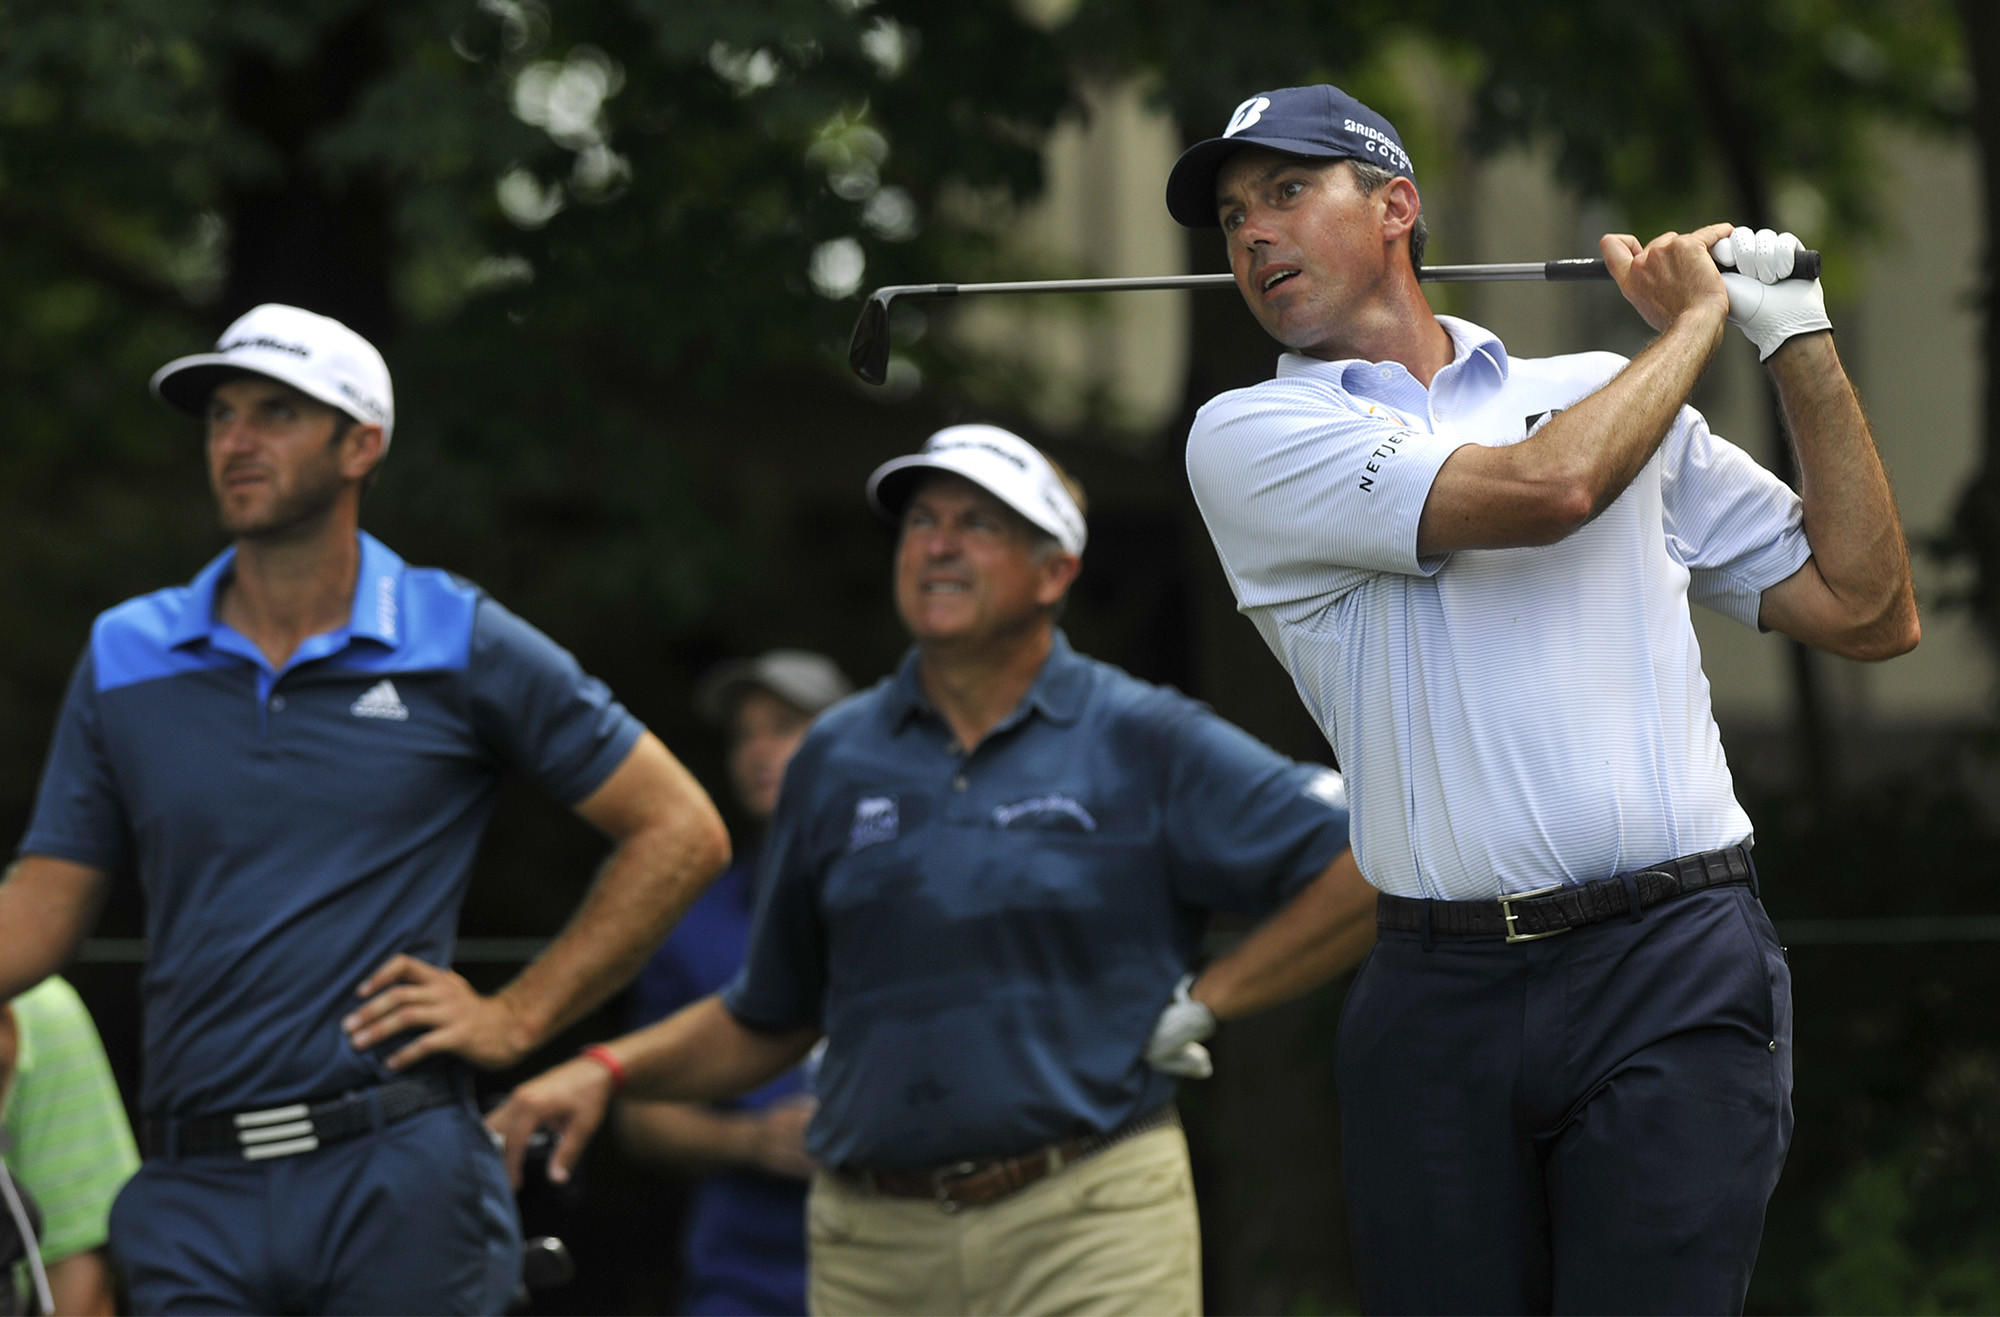 Cromwell, CT - 06/19/14 - Matt Kuchar tees off the 11th hole as Dustin Johnson, left, and Ken Duke, center, look on during the first round of the Travelers Championship at TPC River Highlands Thursday afternoon. Photo by BRAD HORRIGAN | bhorrigan@courant.com